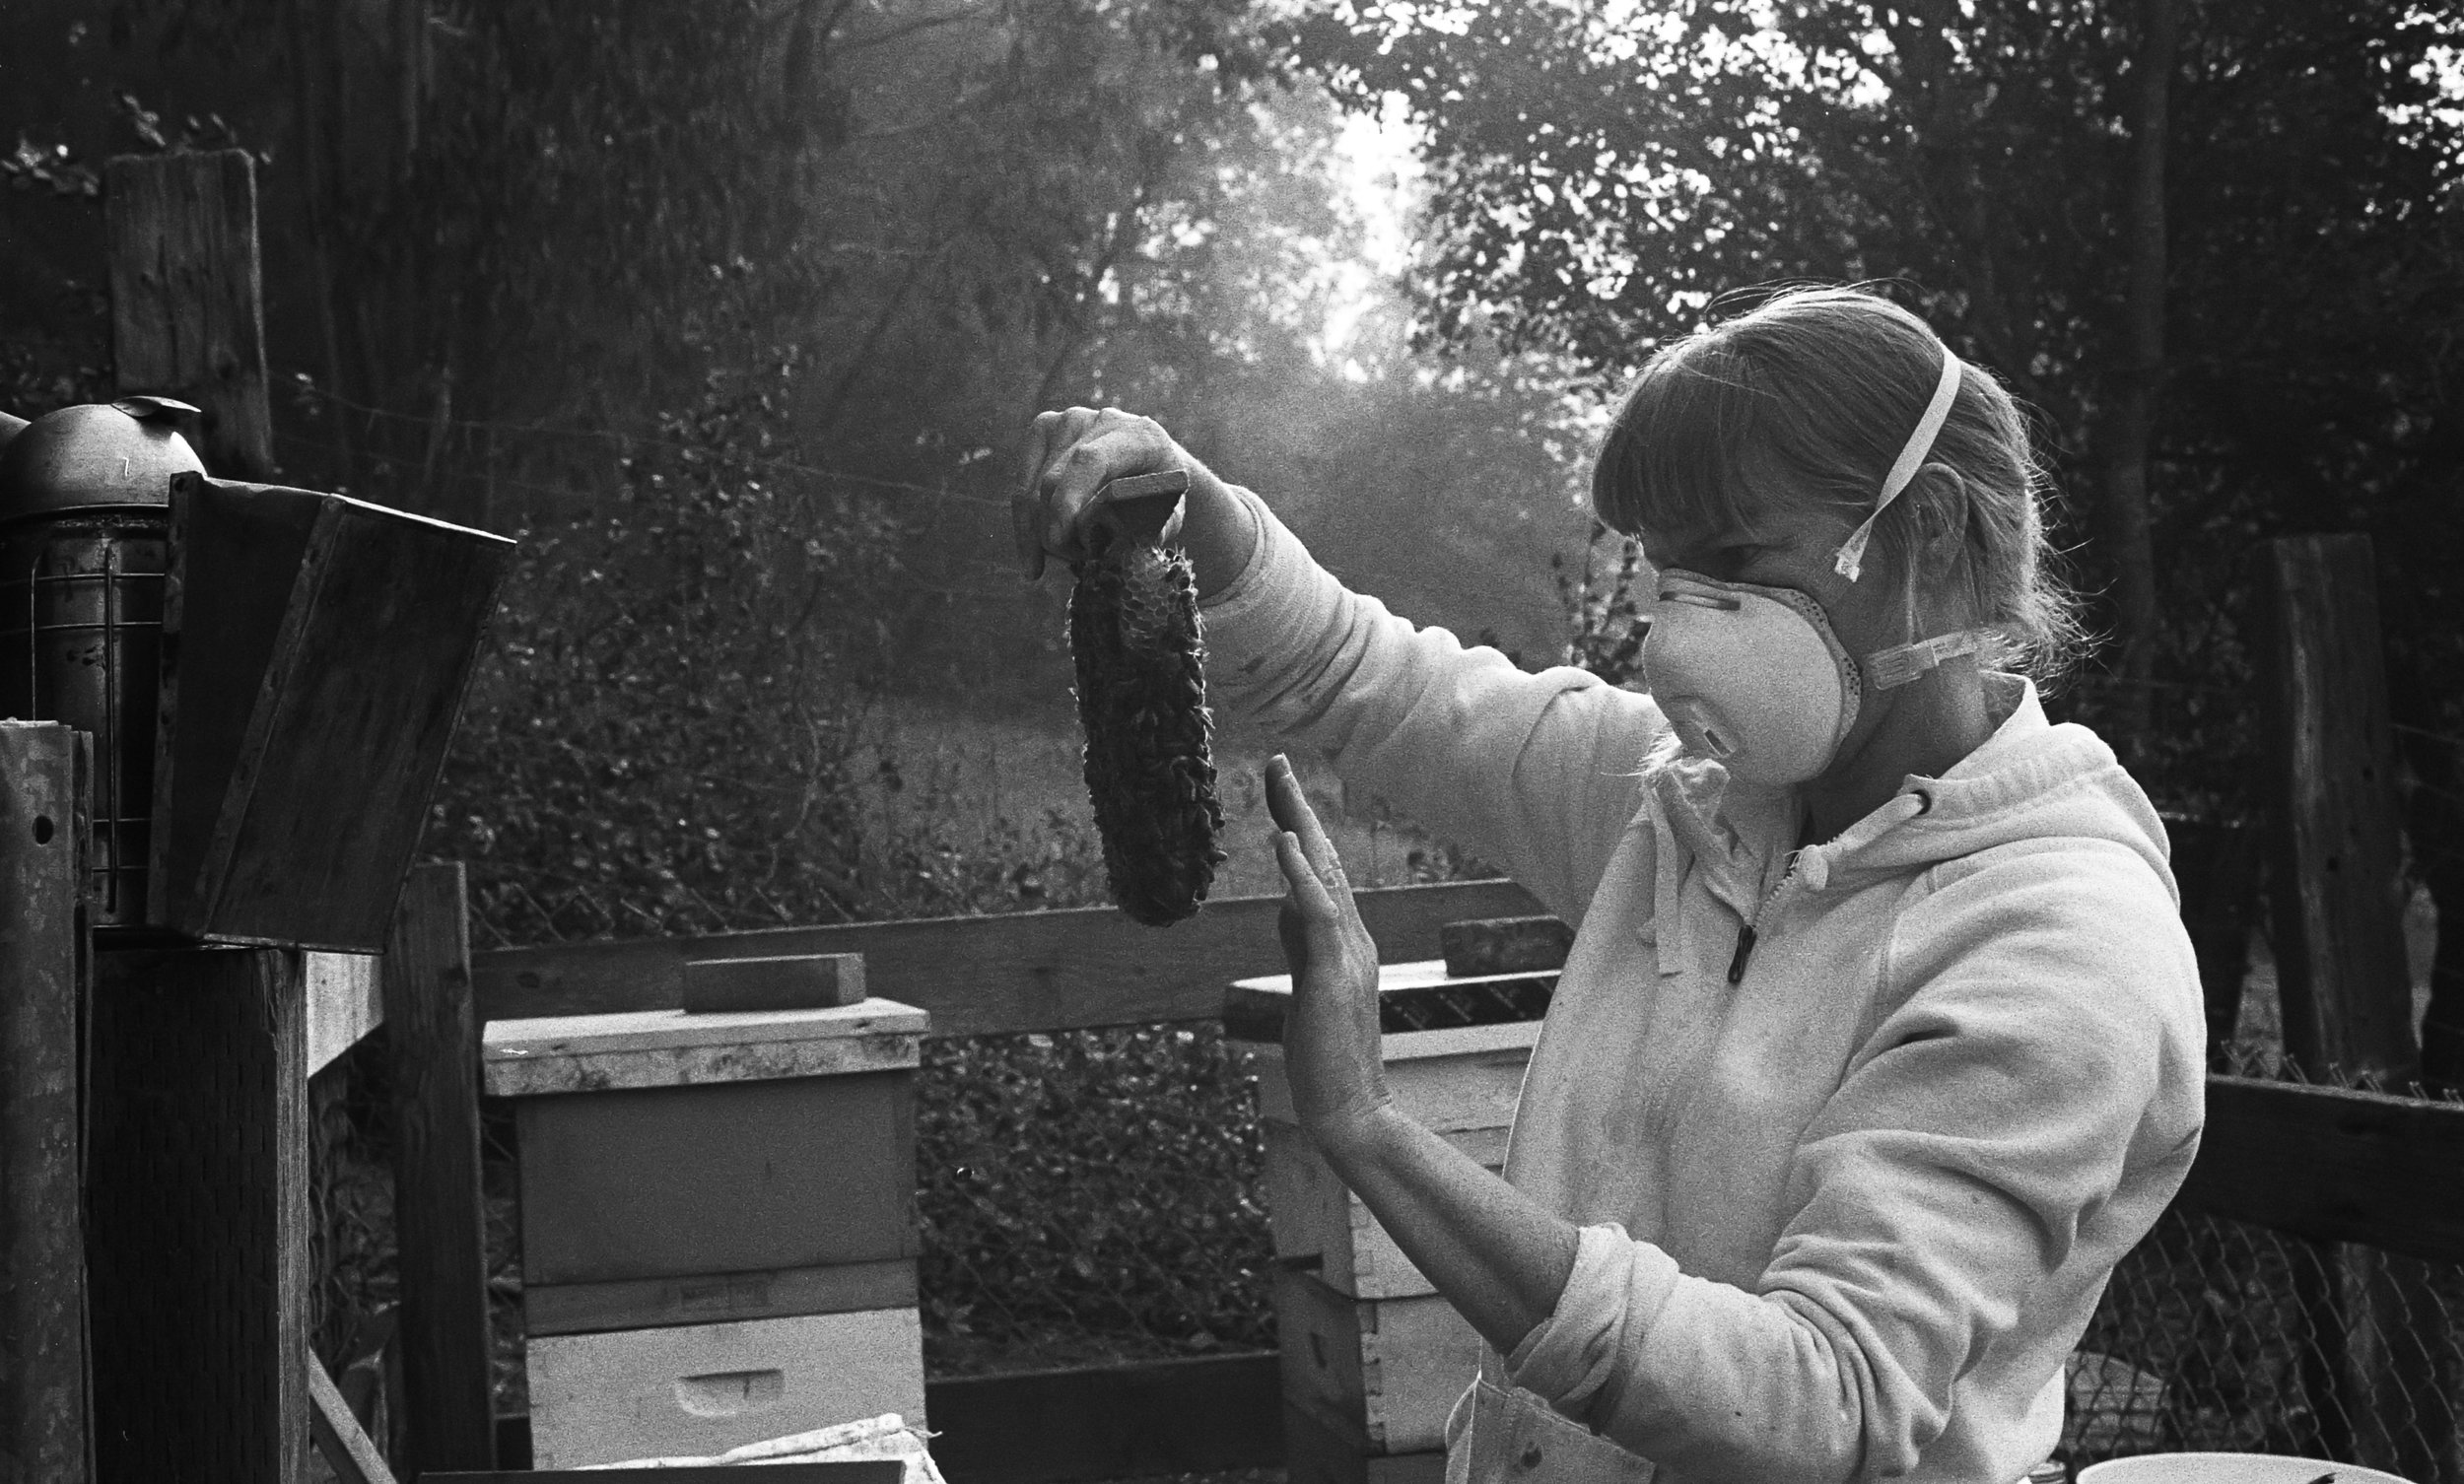 Getting creative- Normally Jennifer blows on bees to get them to move, but here she places her hand gently on top to get the bees to move